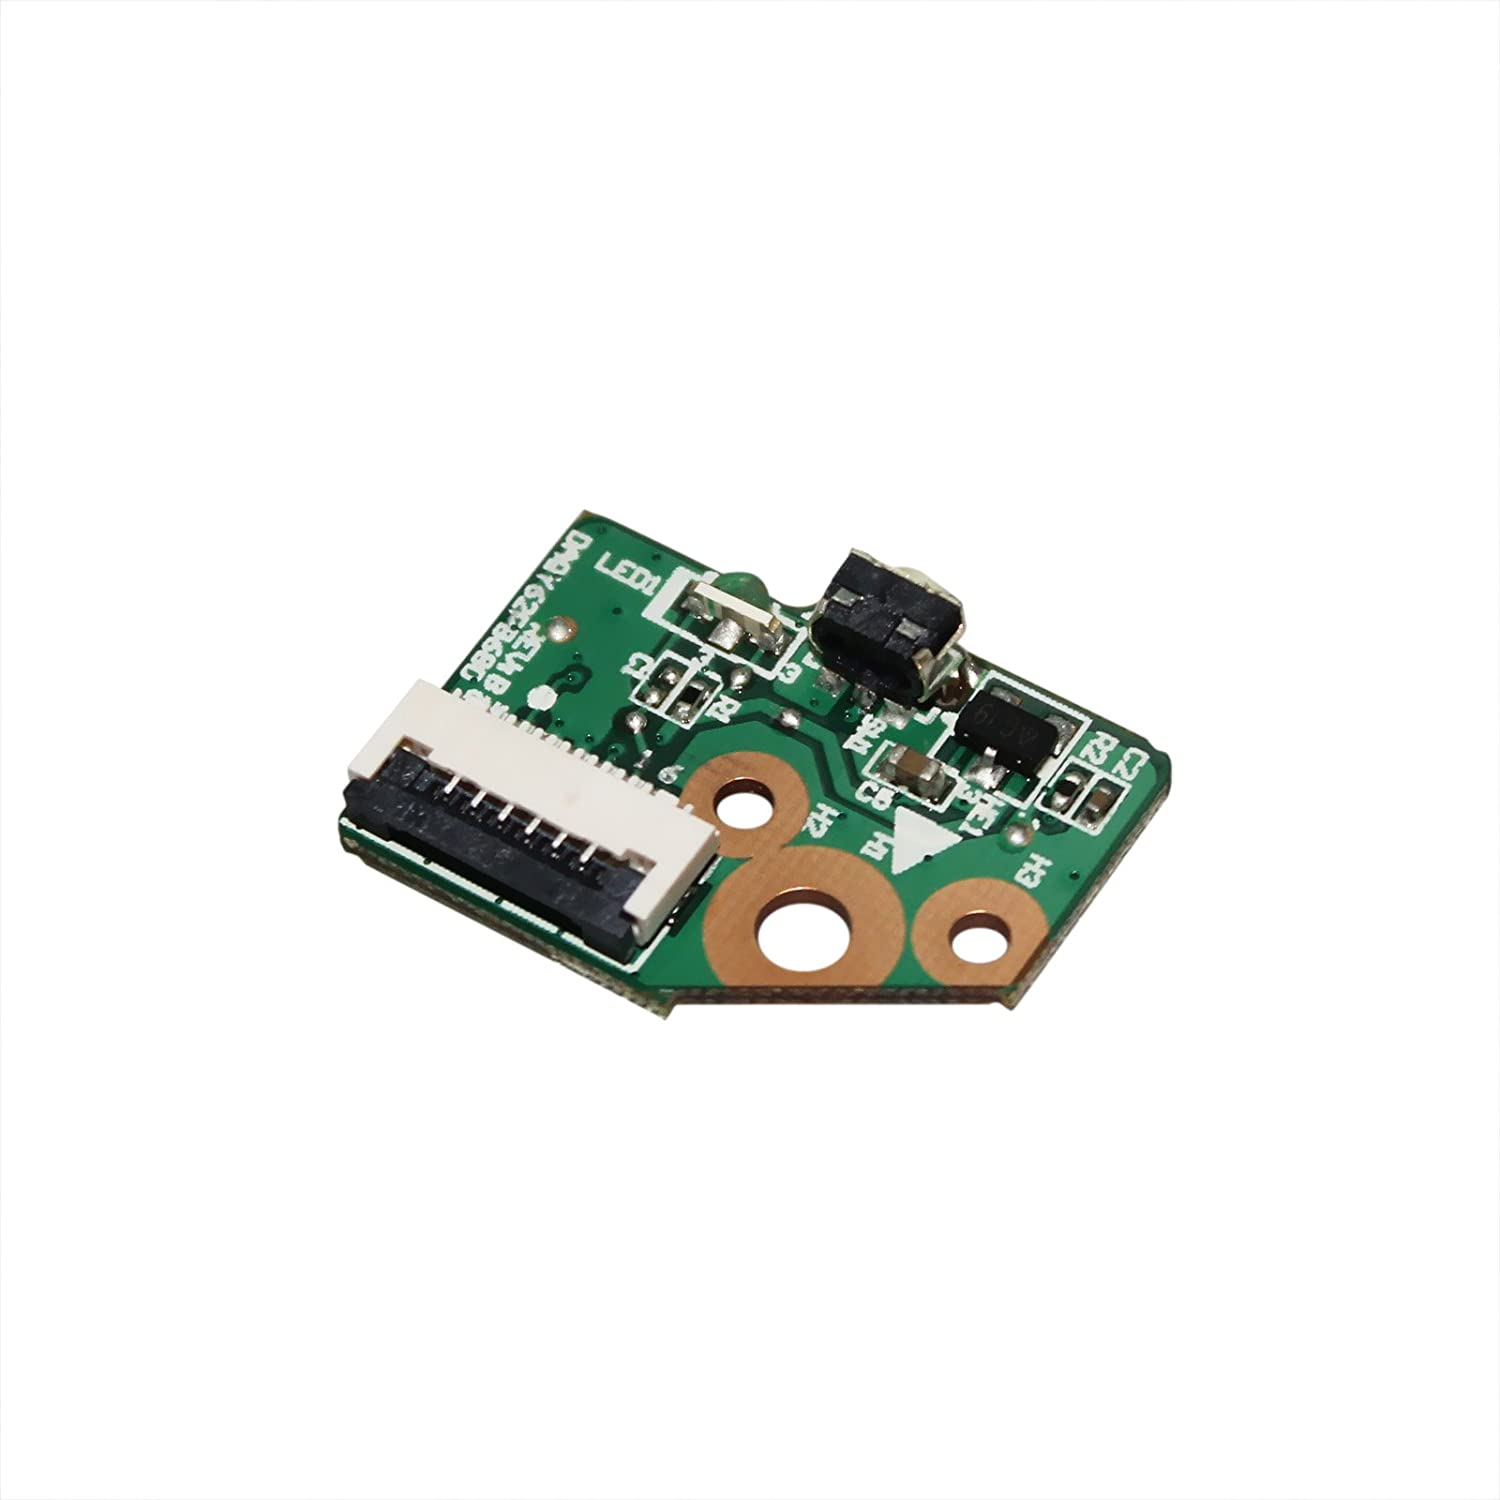 GinTai Power Button Board Replacement for HP X360 774599-001 15-u 15-u001xx 15-u002xx 15-u010dx 15-u011dx 15-u050ca 15-u000 15-u110dx 15-u111dx 15-u170ca 15-u100 15-u200 CTO